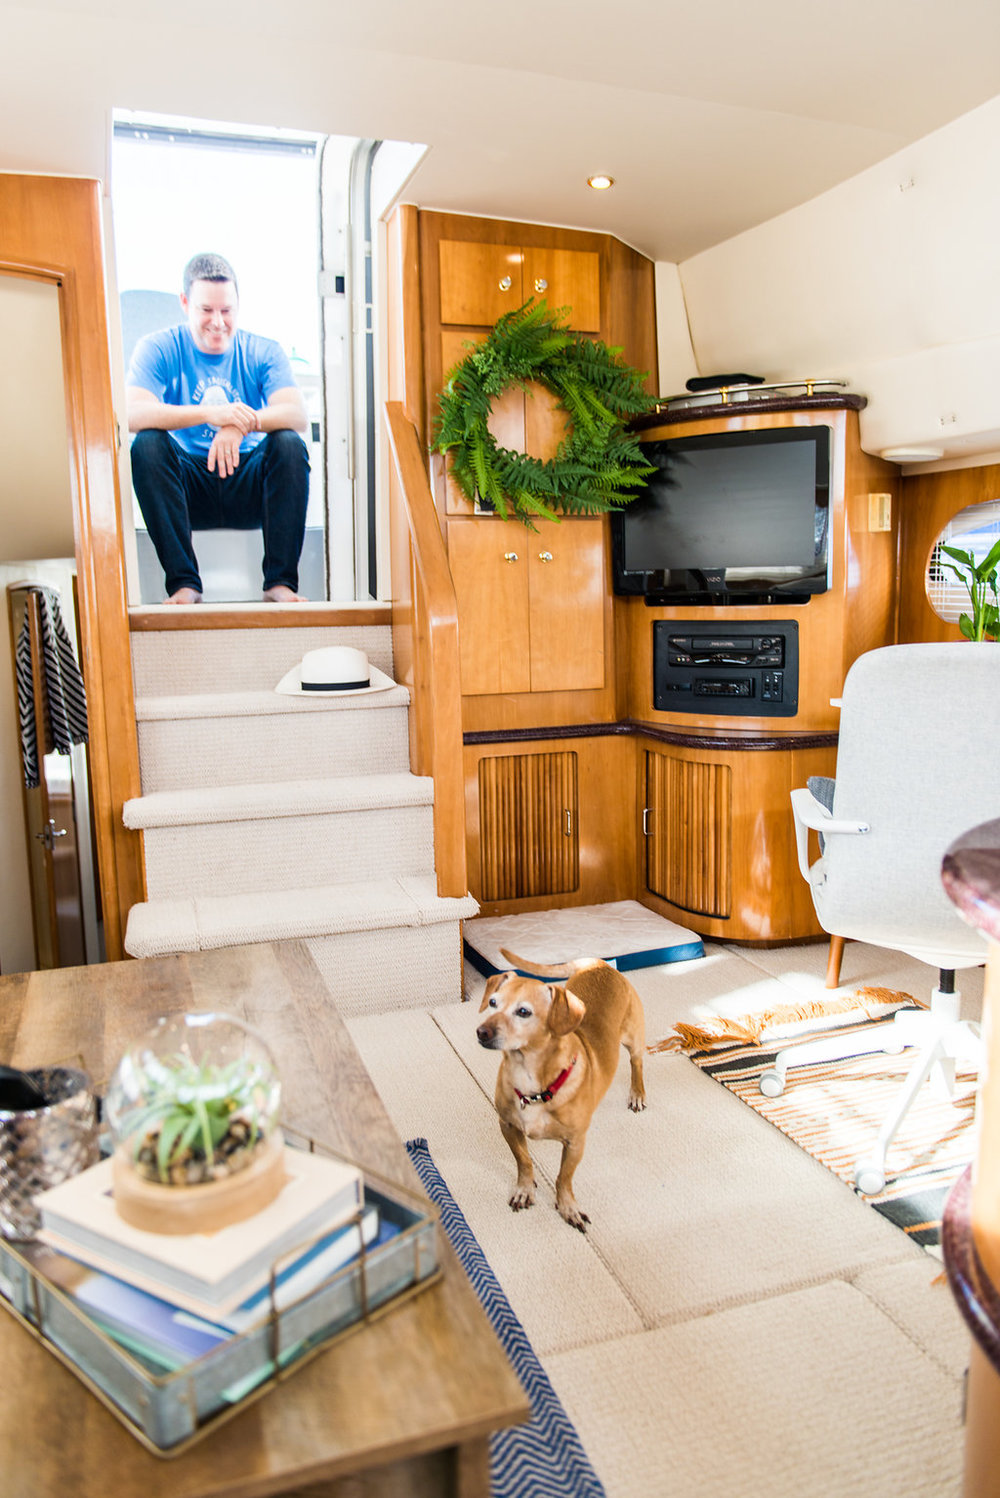 A Peek Inside Our Boat (Turned Tiny Home) -